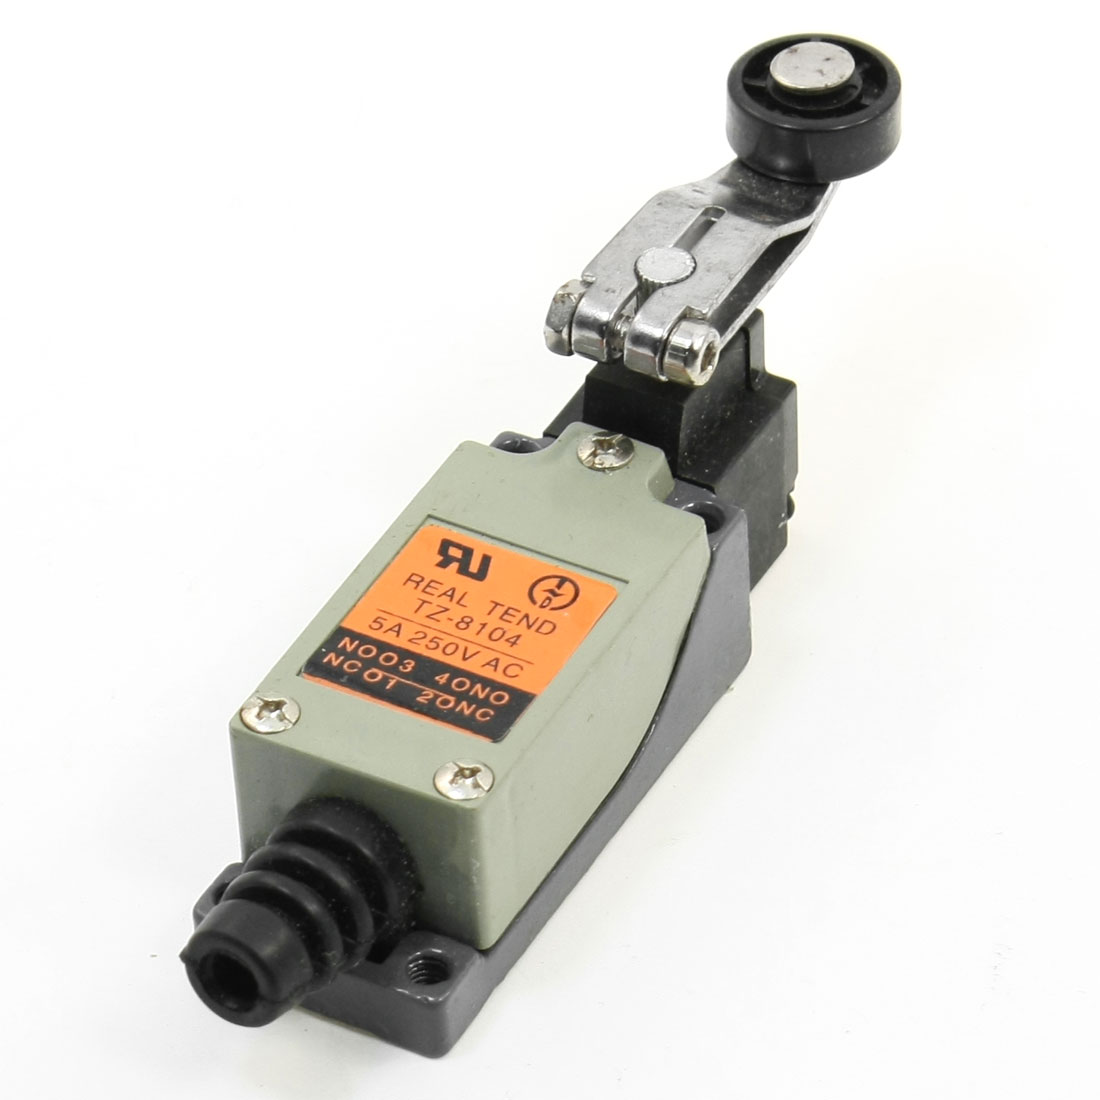 TZ-8104 Actuator Action Rotary Lever Arm Limit Switch AC 5A 250V